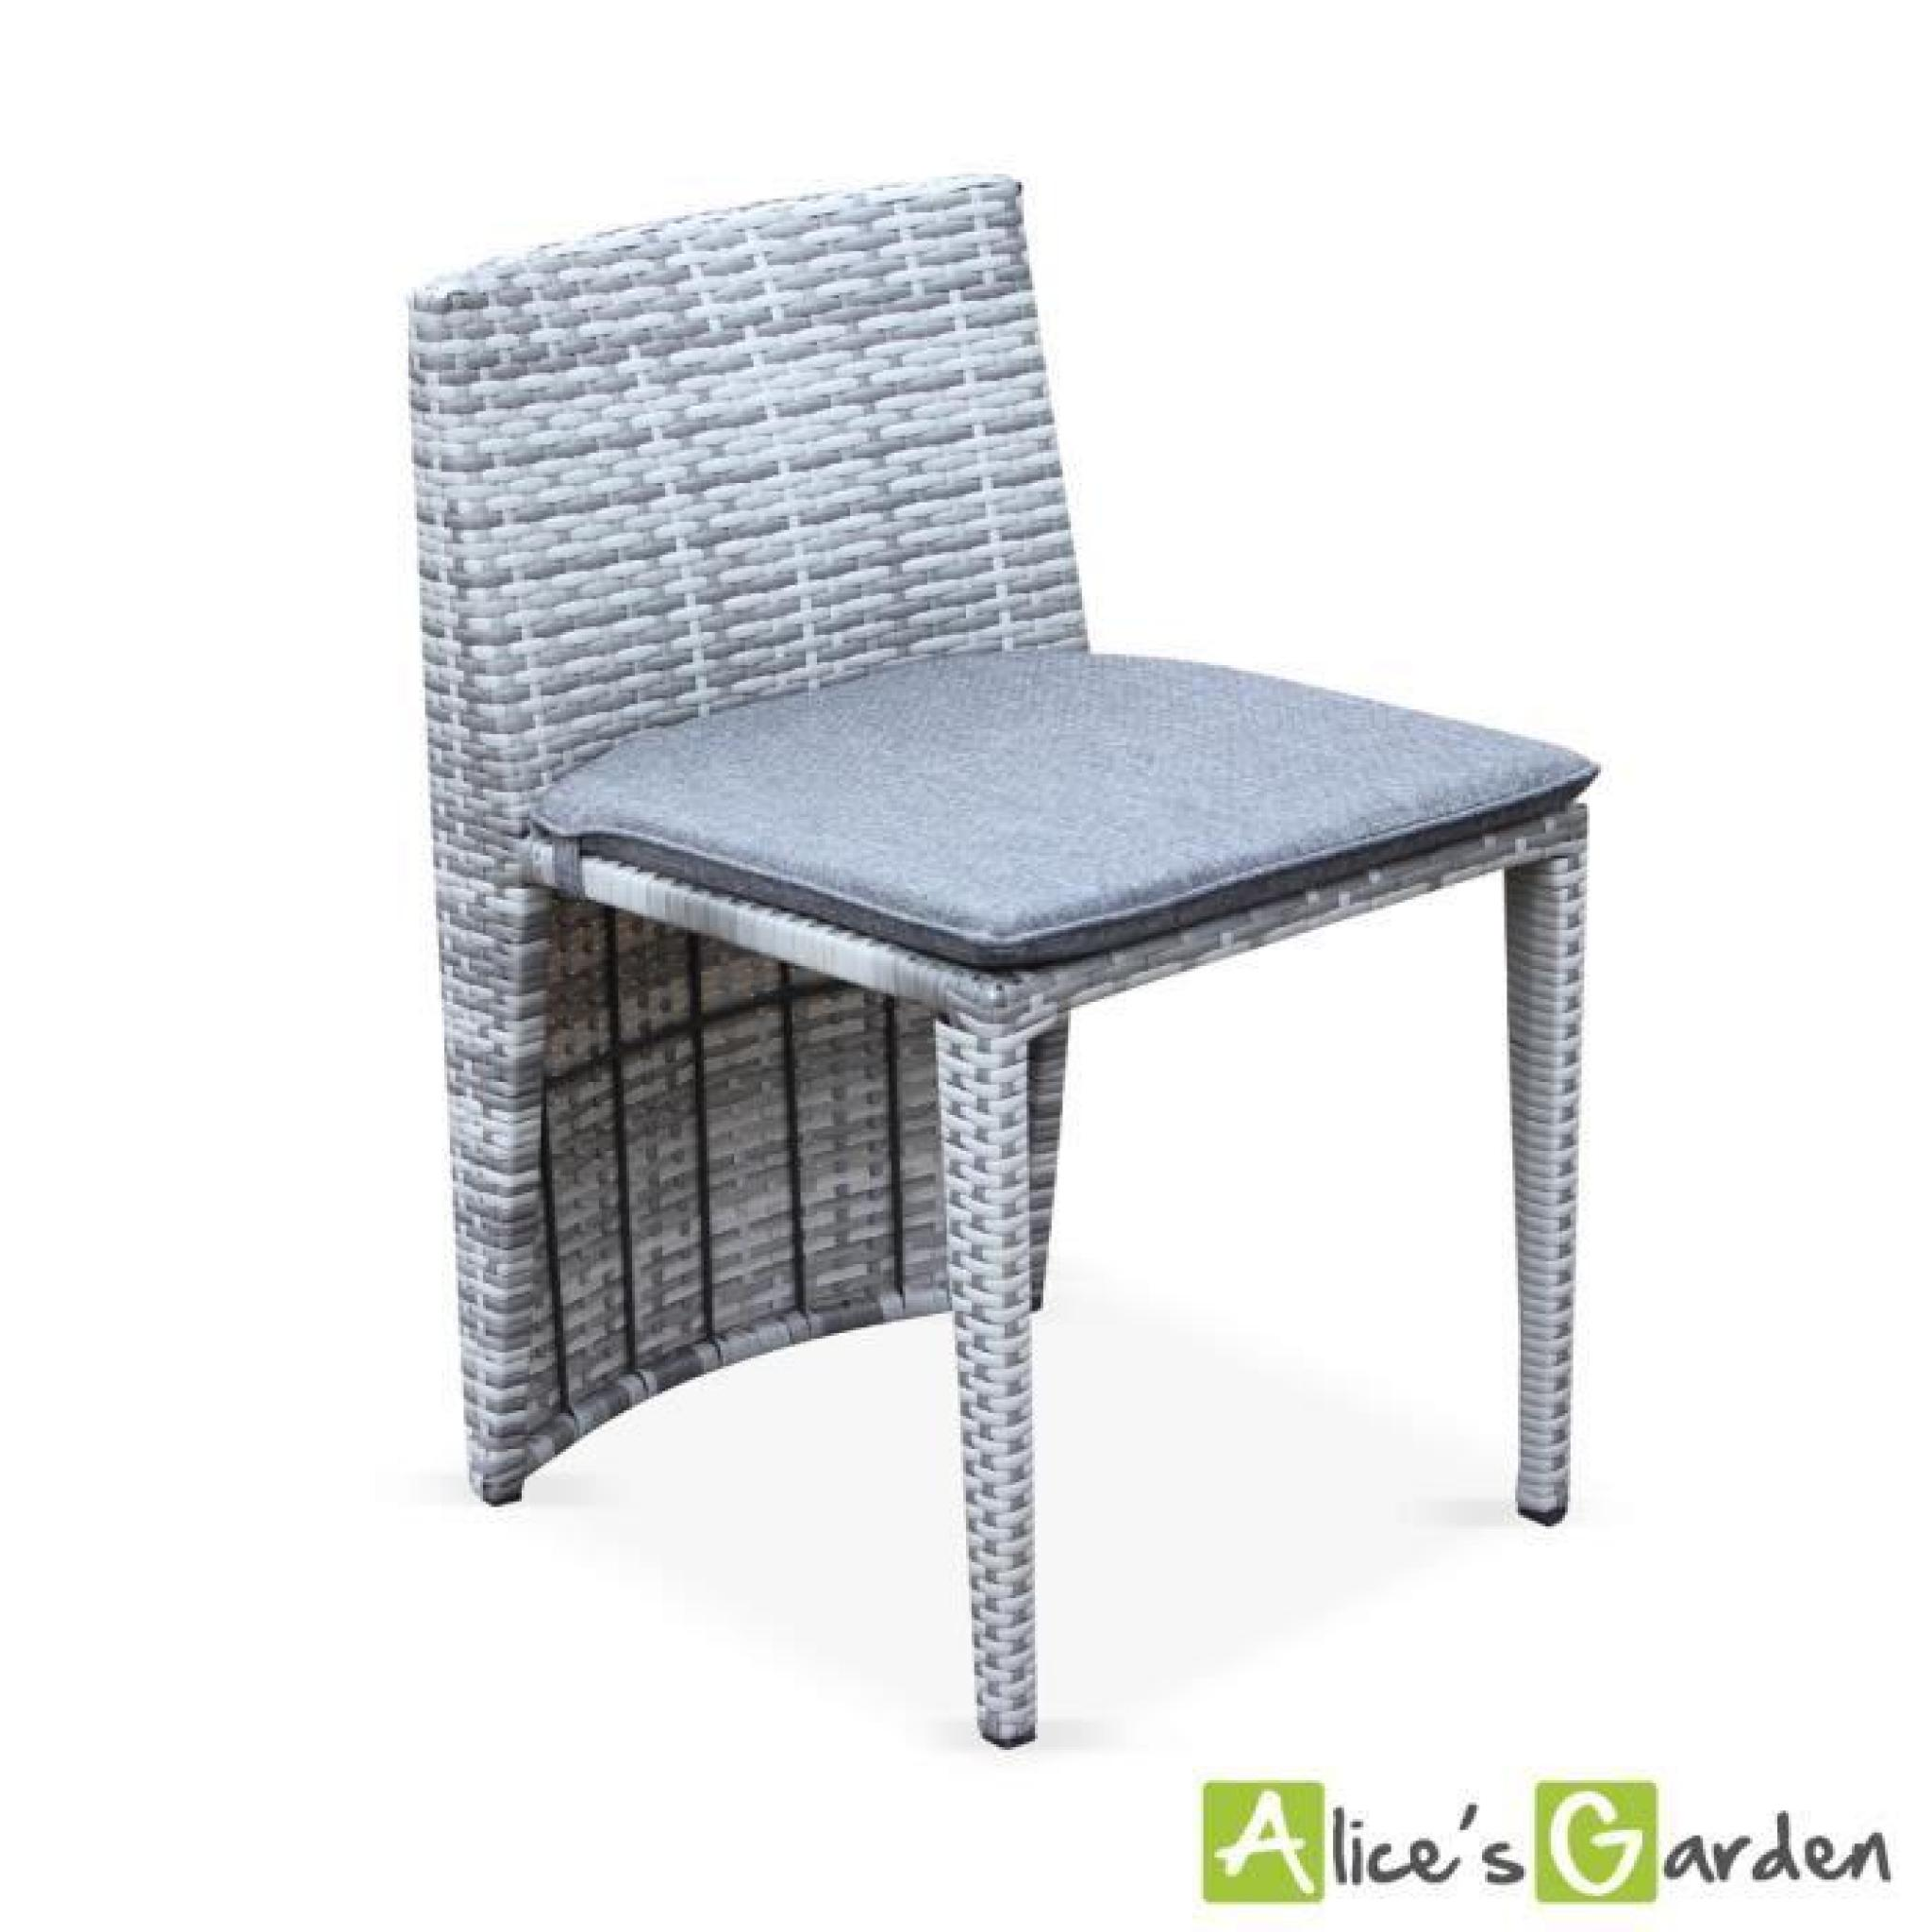 salon de jardin en r sine tress e nuances de gris 8 fauteuils table 200cm structure en. Black Bedroom Furniture Sets. Home Design Ideas